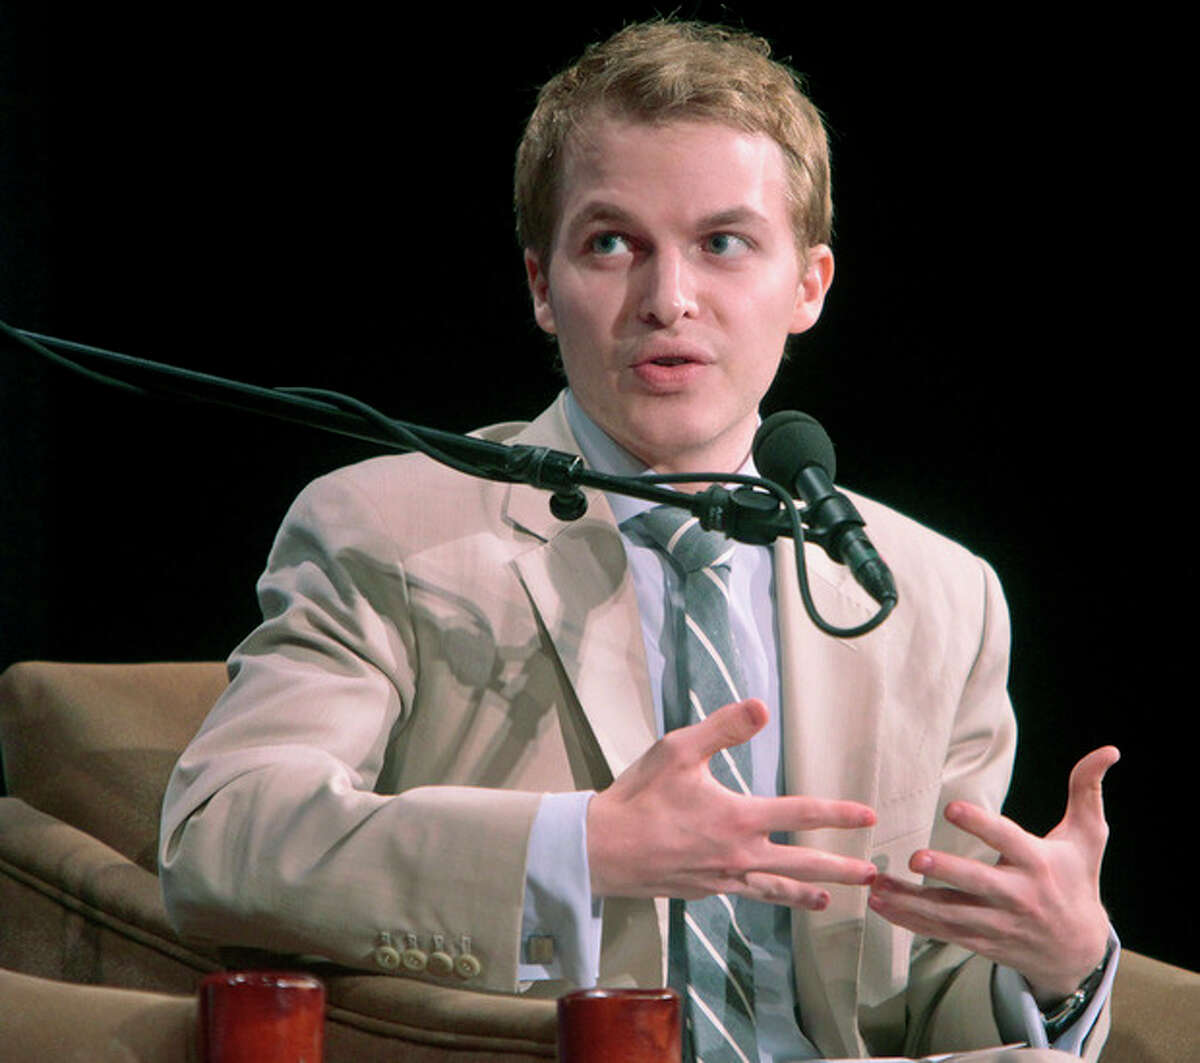 """FILE - In this Sept. 22, 2011 file photo released by the United Nations Foundation, Ronan Farrow, Special Adviser to the Secretary of State for Global Youth Issues, speaks during the Social Good Summit in New York. Farrow's mother, actress and activist Mia Farrow says in an interview with Vanity Fair that it?'s possible her son with Woody Allen is instead Frank Sinatra?'s. Farrow told the magazine that she and Sinatra ?""""never really split up?"""" and when asked if Ronan Farrow might actually be Sinatra?'s son, she answered, ?""""Possibly.?"""" (AP Photo/United Nations Foundation, Gary He)"""